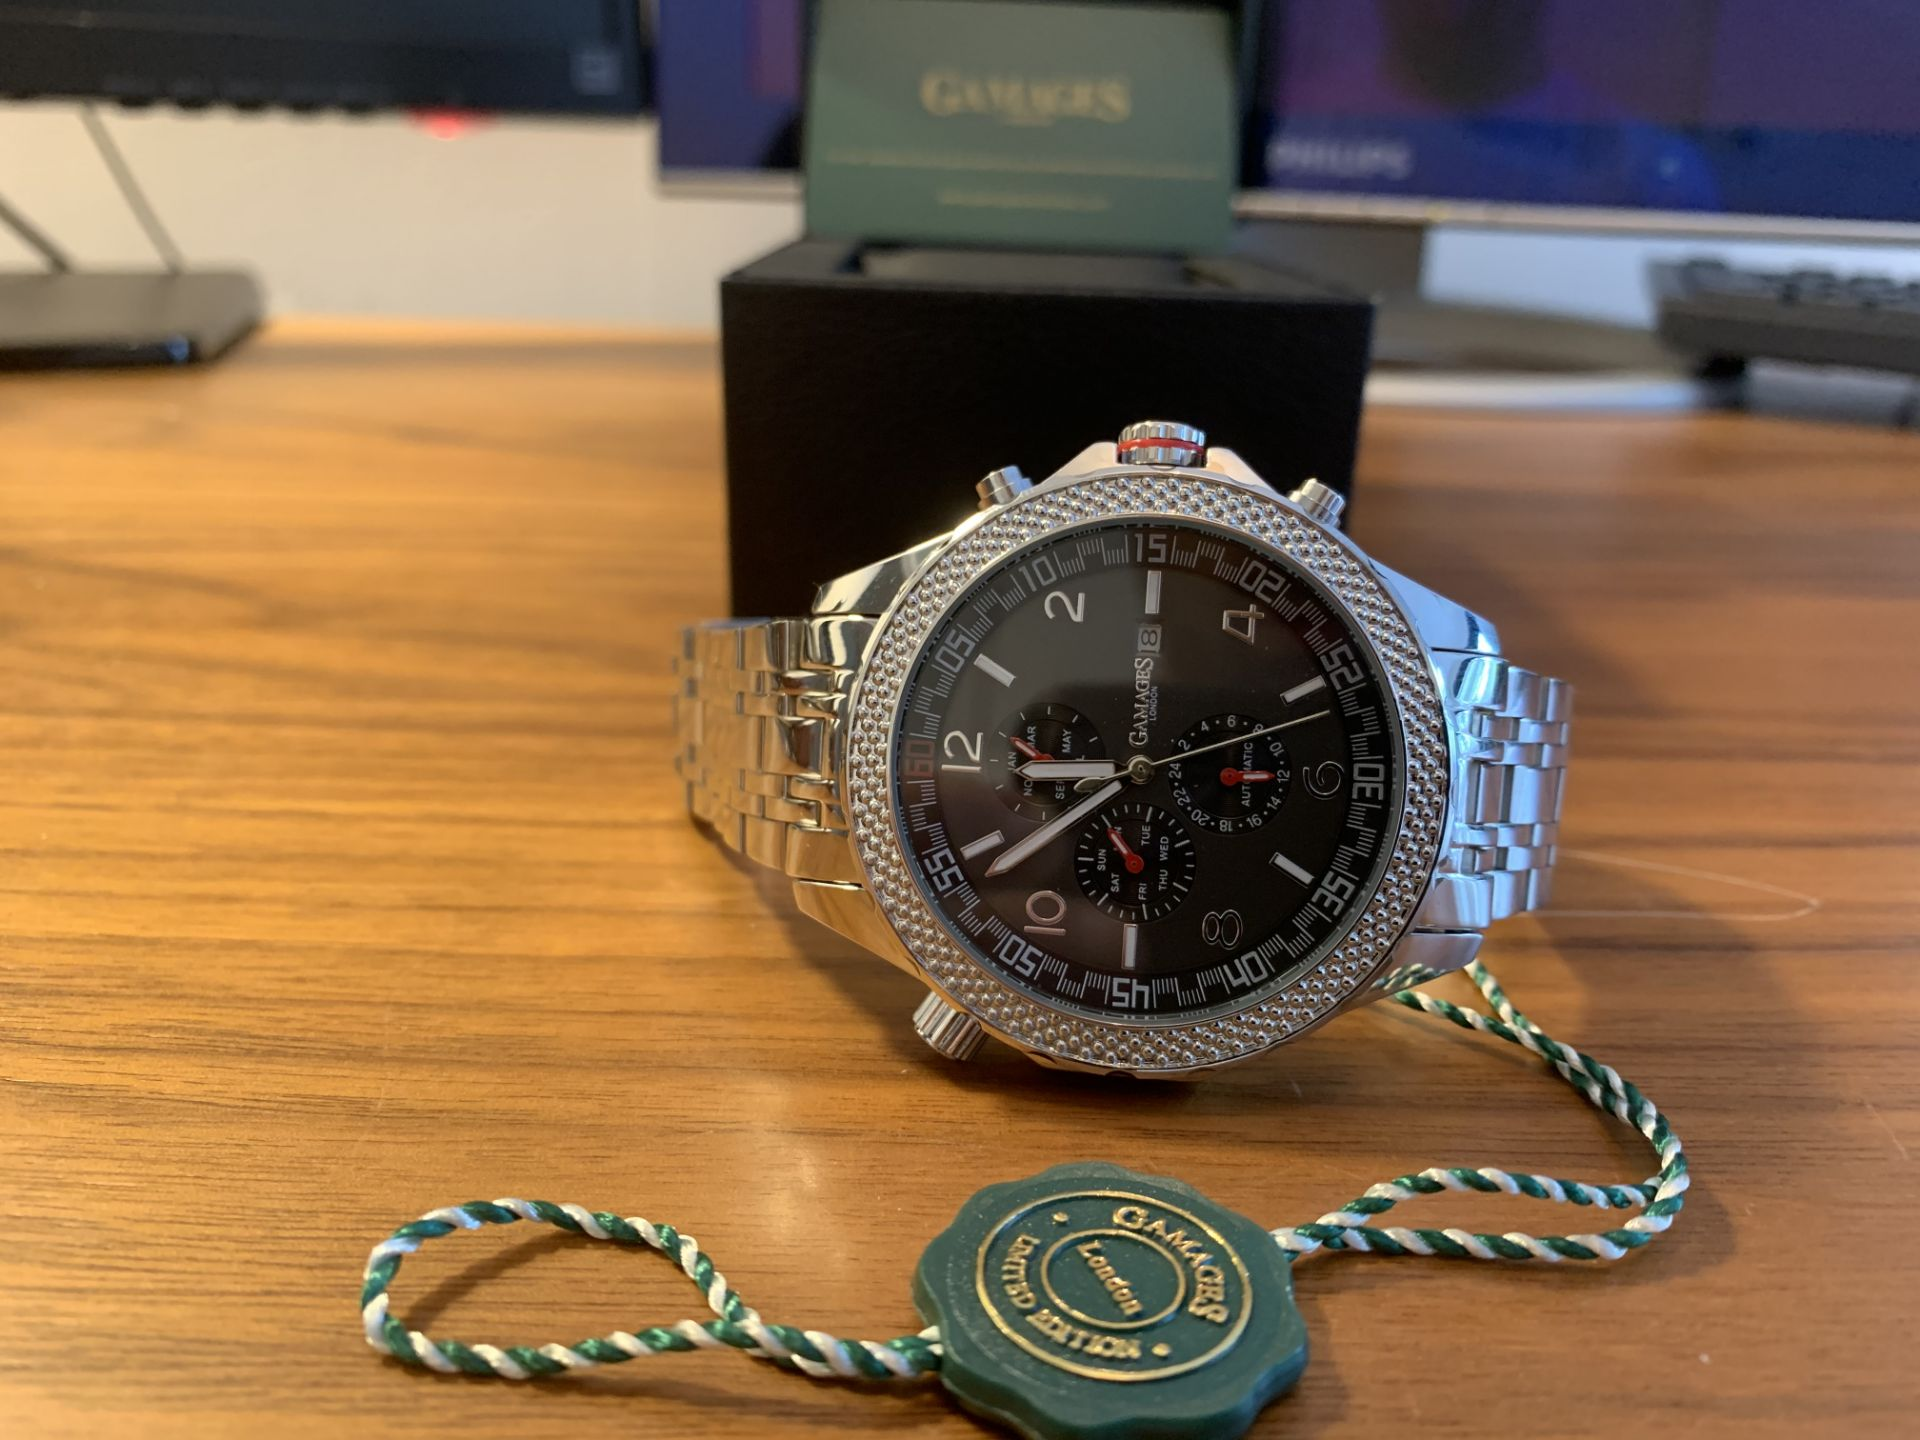 Ltd Edition Hand Assembled Gamages Intrinsic Rotator Automatic Steel – 5 Yr Warranty & Free Delivery - Image 3 of 5